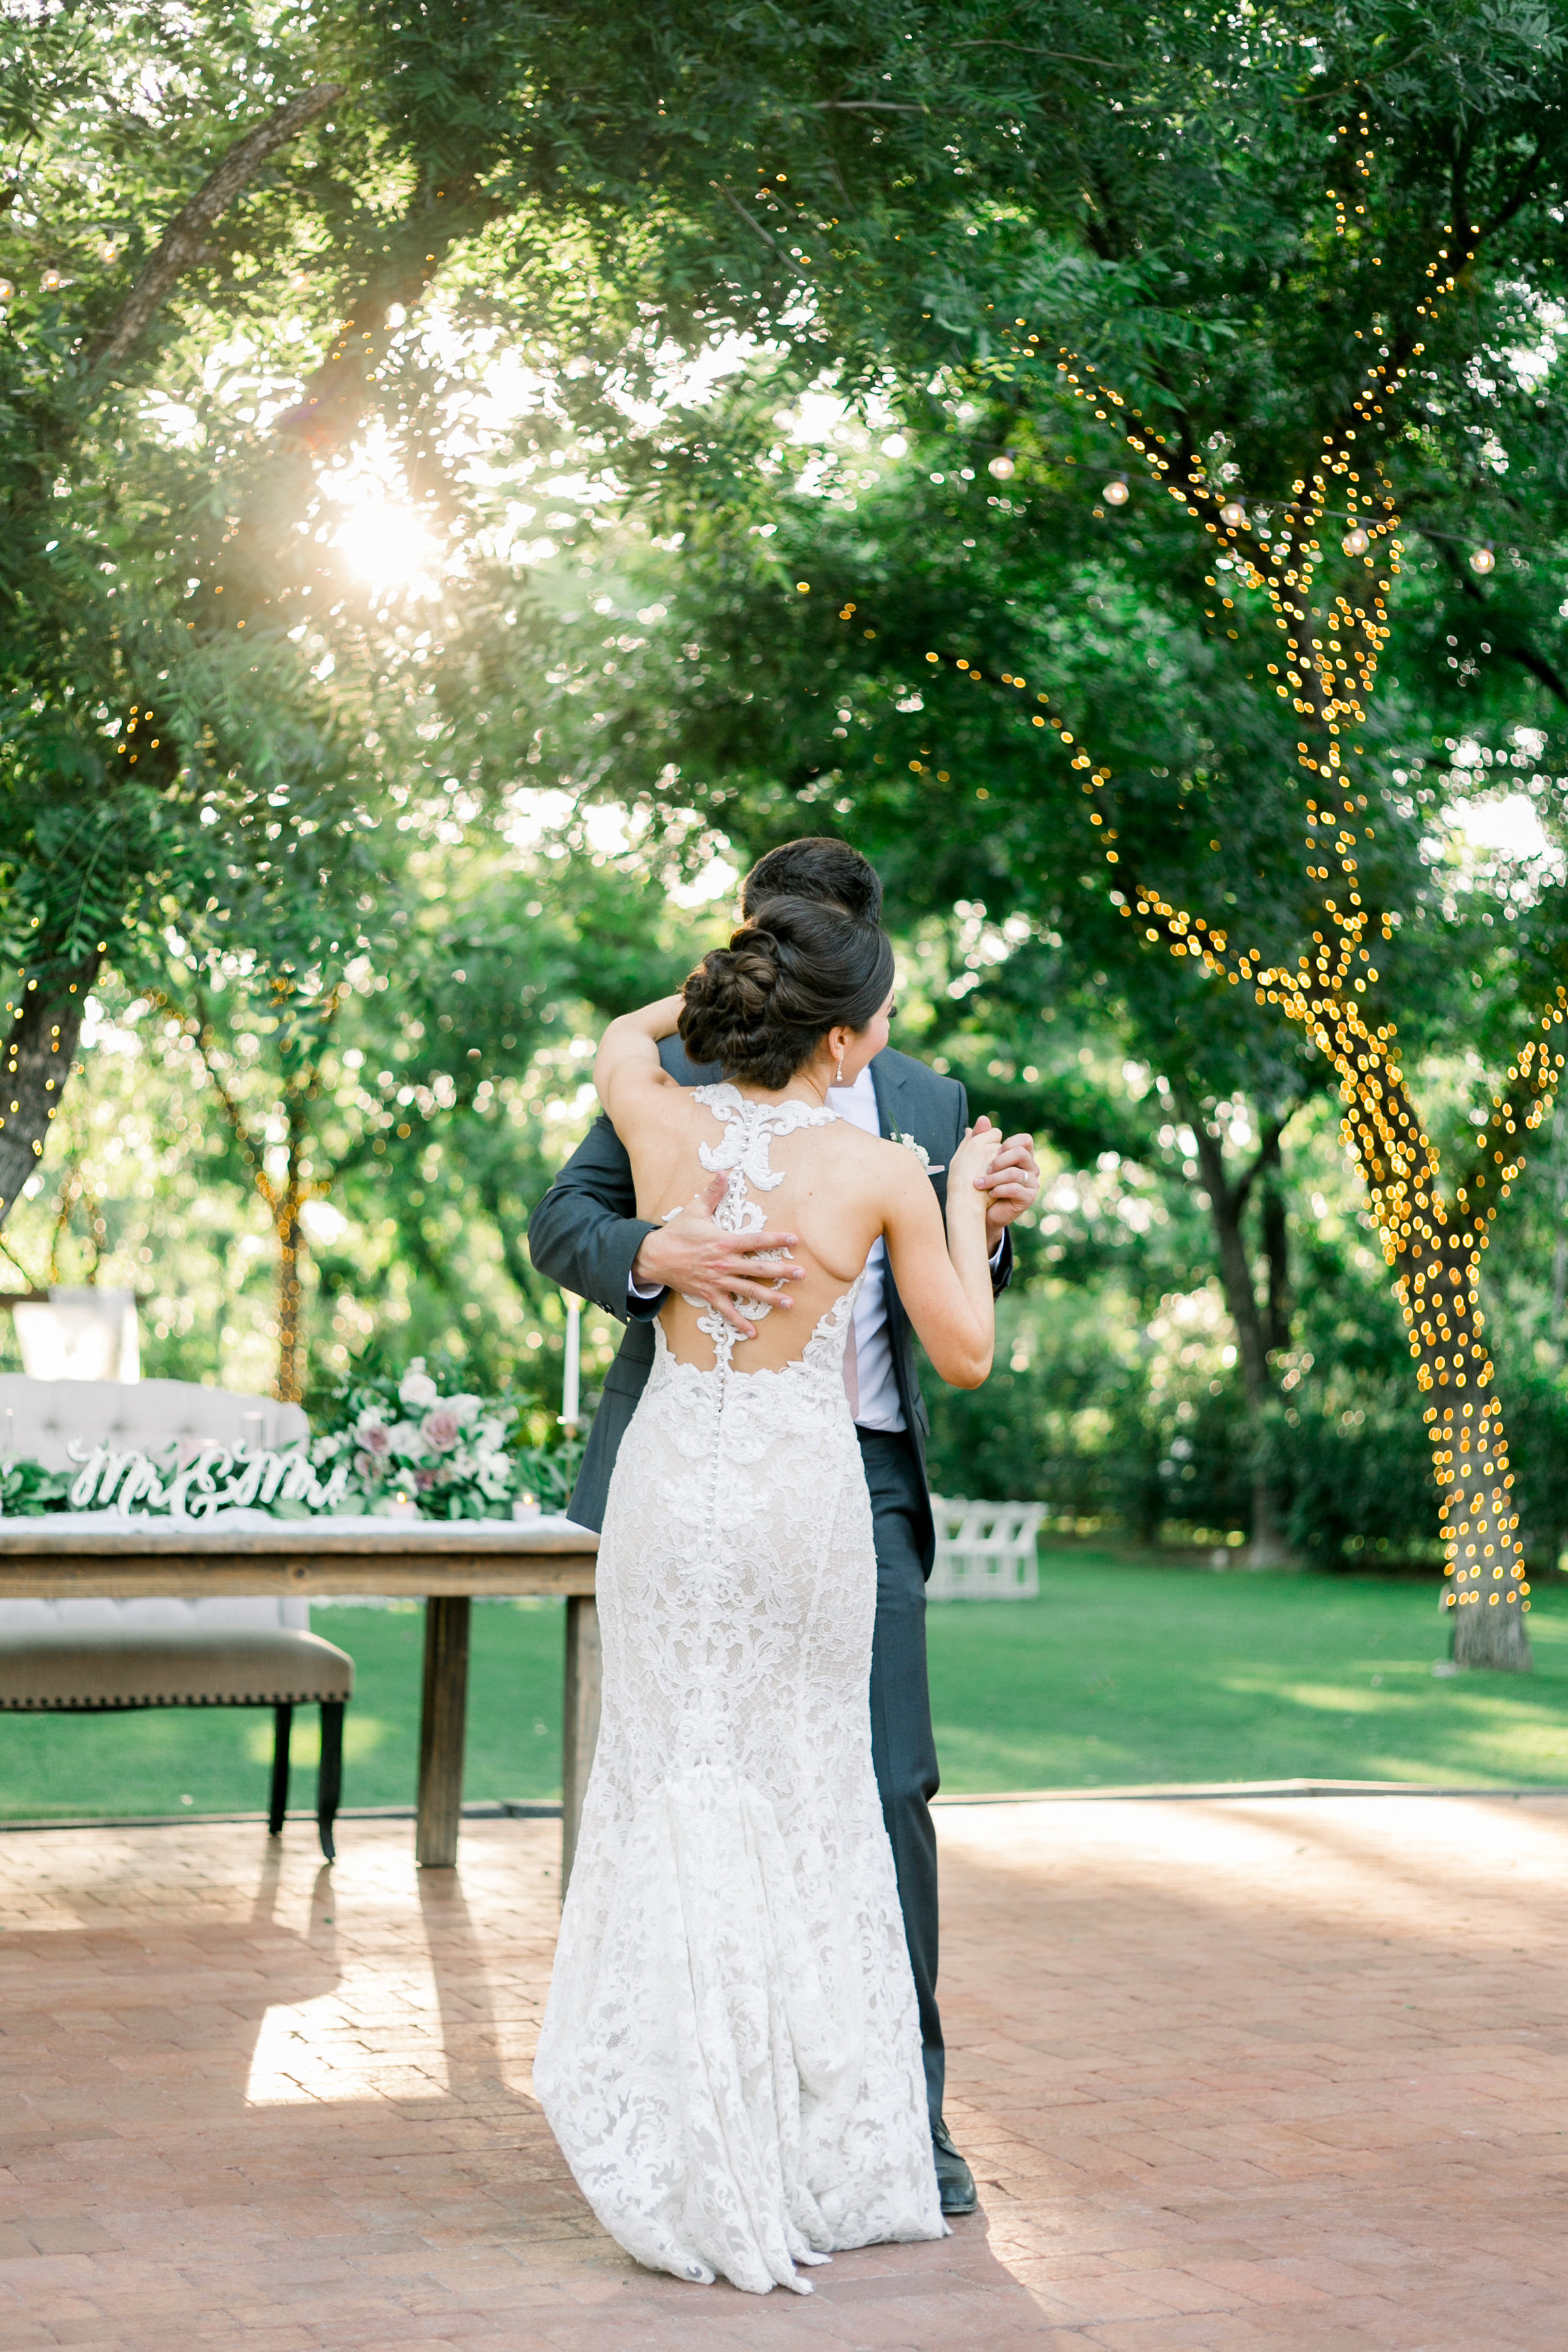 Karlie Colleen Photography - Venue At The Grove - Arizona Wedding - Maggie & Grant -100